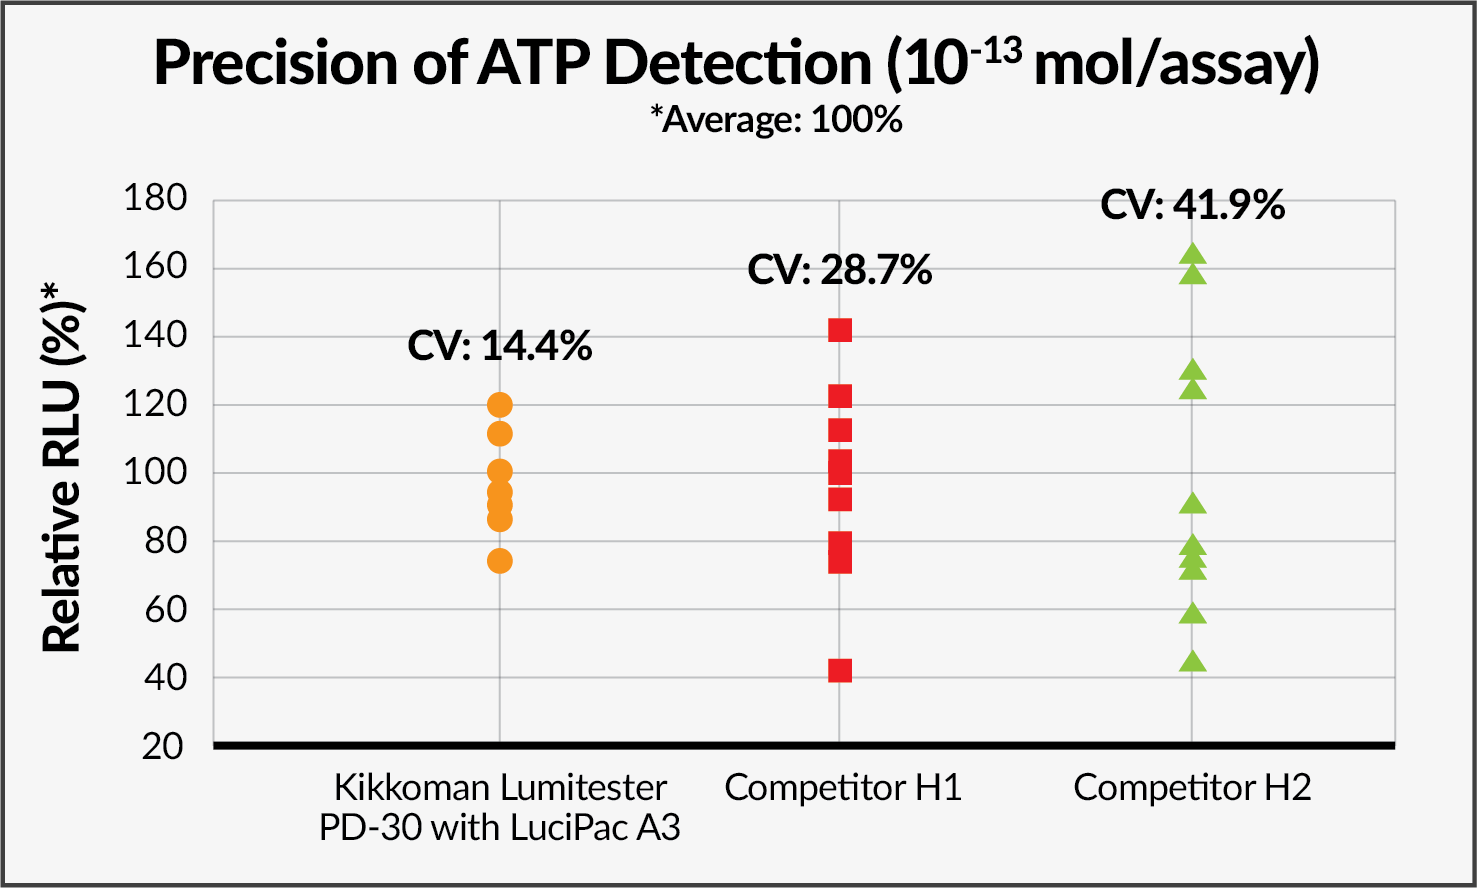 The Lumitester with LuciPac A3 swab demonstrated superior repeatability relative to competitors even at the low level of ATP (10-13 moles ATP/assay).